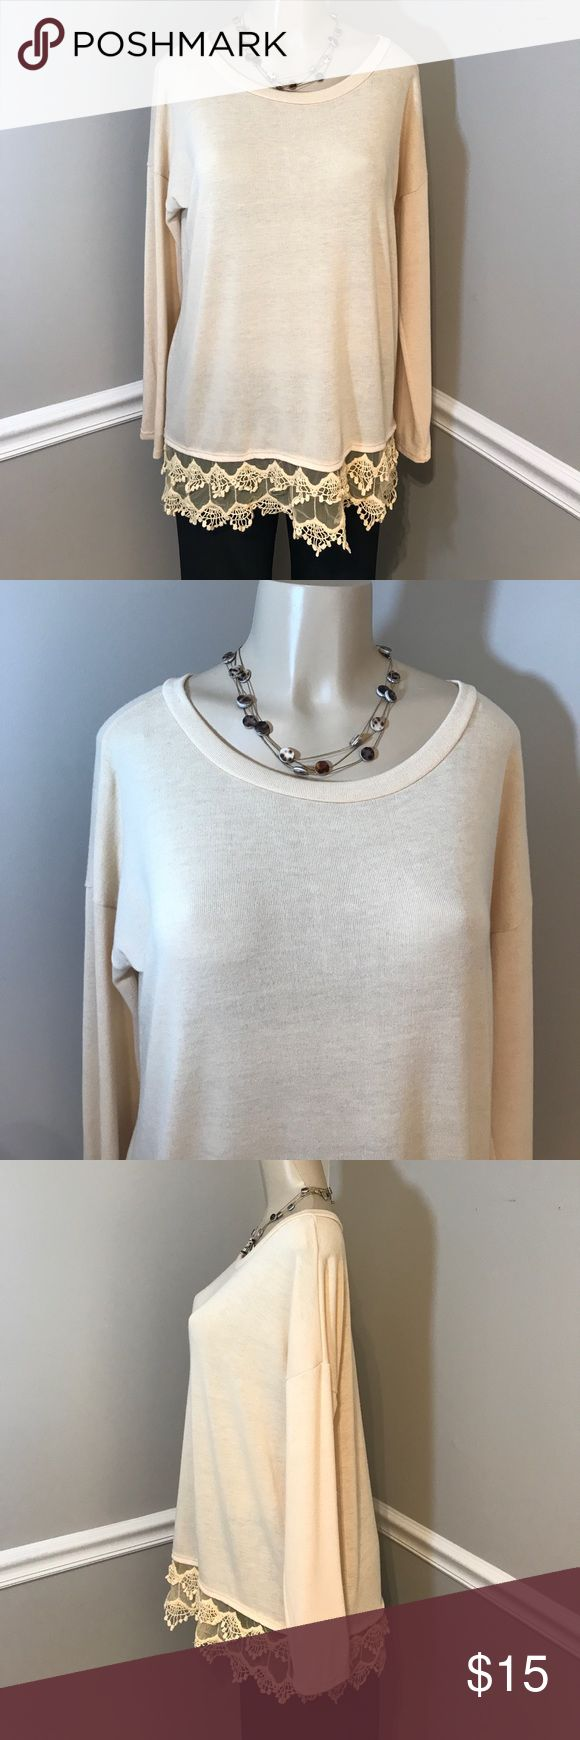 "Emerald Lacy Cream Long Sleeve Top Size Large NWT This shirt features lace detail around bottom hem. Bust measures 23"" laying flat. Length 28"" shoulder to bottom of hem. New with tags. Smoke free home. (AC) Emerald Tops Blouses"